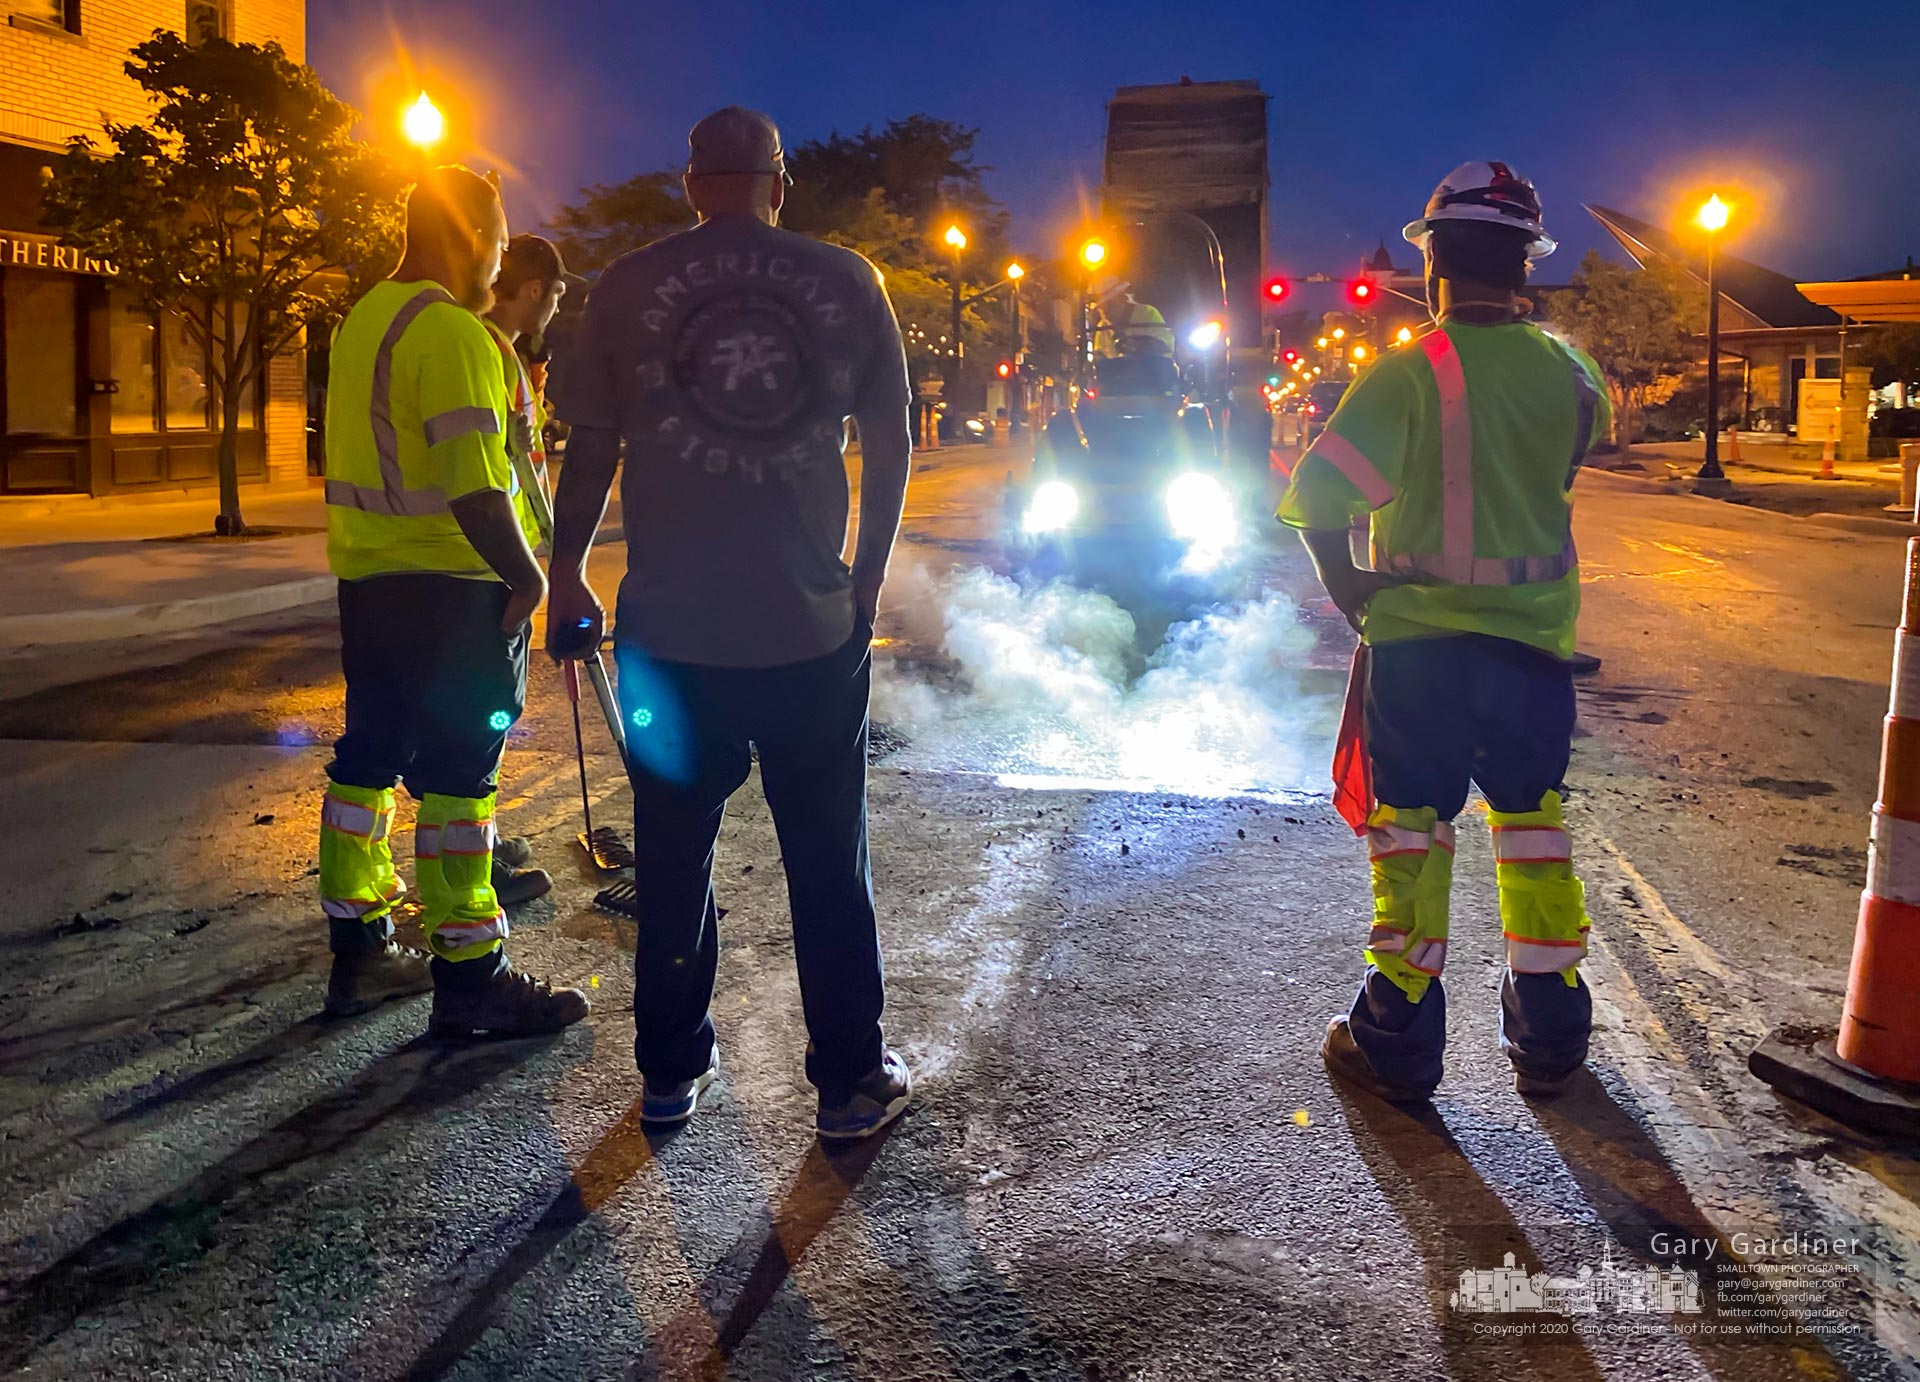 A paving crew begins work at night on sections of State Street in Uptown Westerville signaling the last phase of the Uptown Improvement Project. My Final Photo for June 24, 2020.